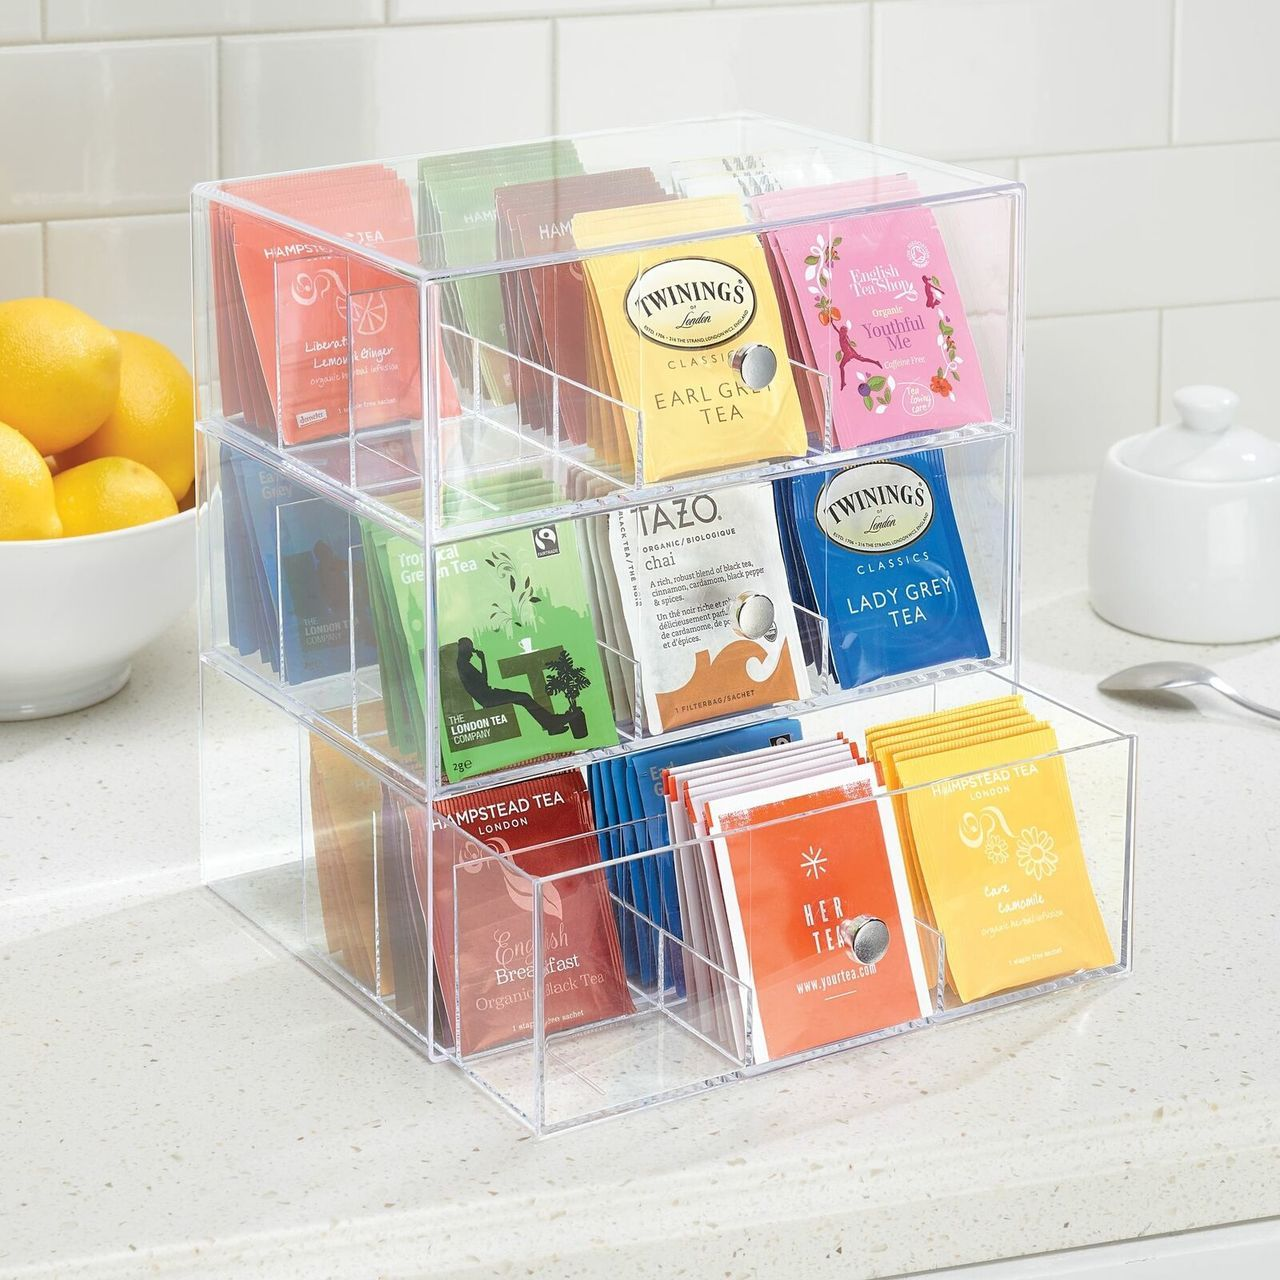 Tea Bag Holder and Condiment Accessory Organizer Box in Cream/Clear, by mDesign